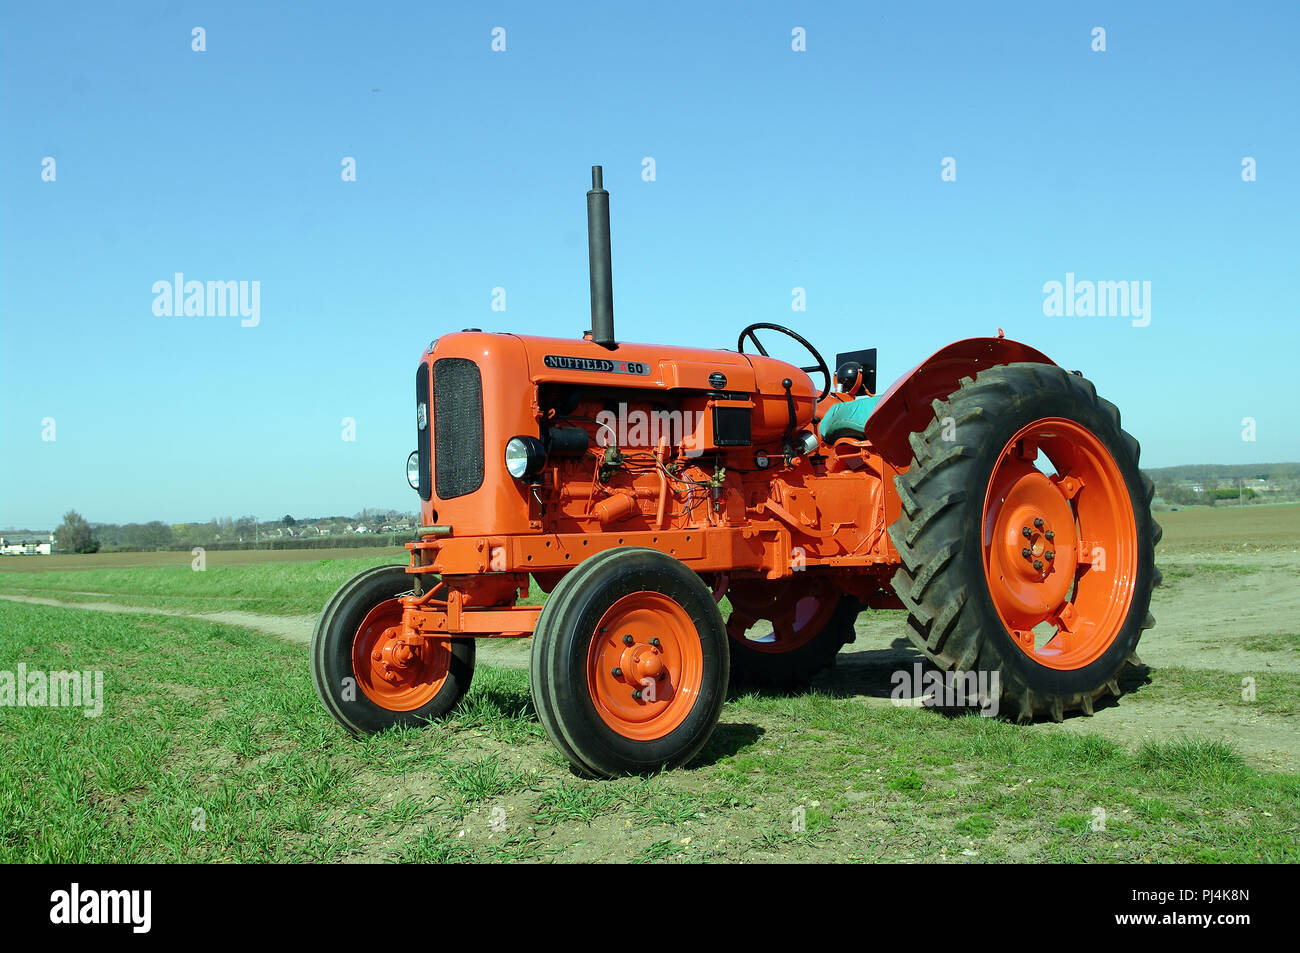 1962 Nuffield 460 tractor Stock Photo